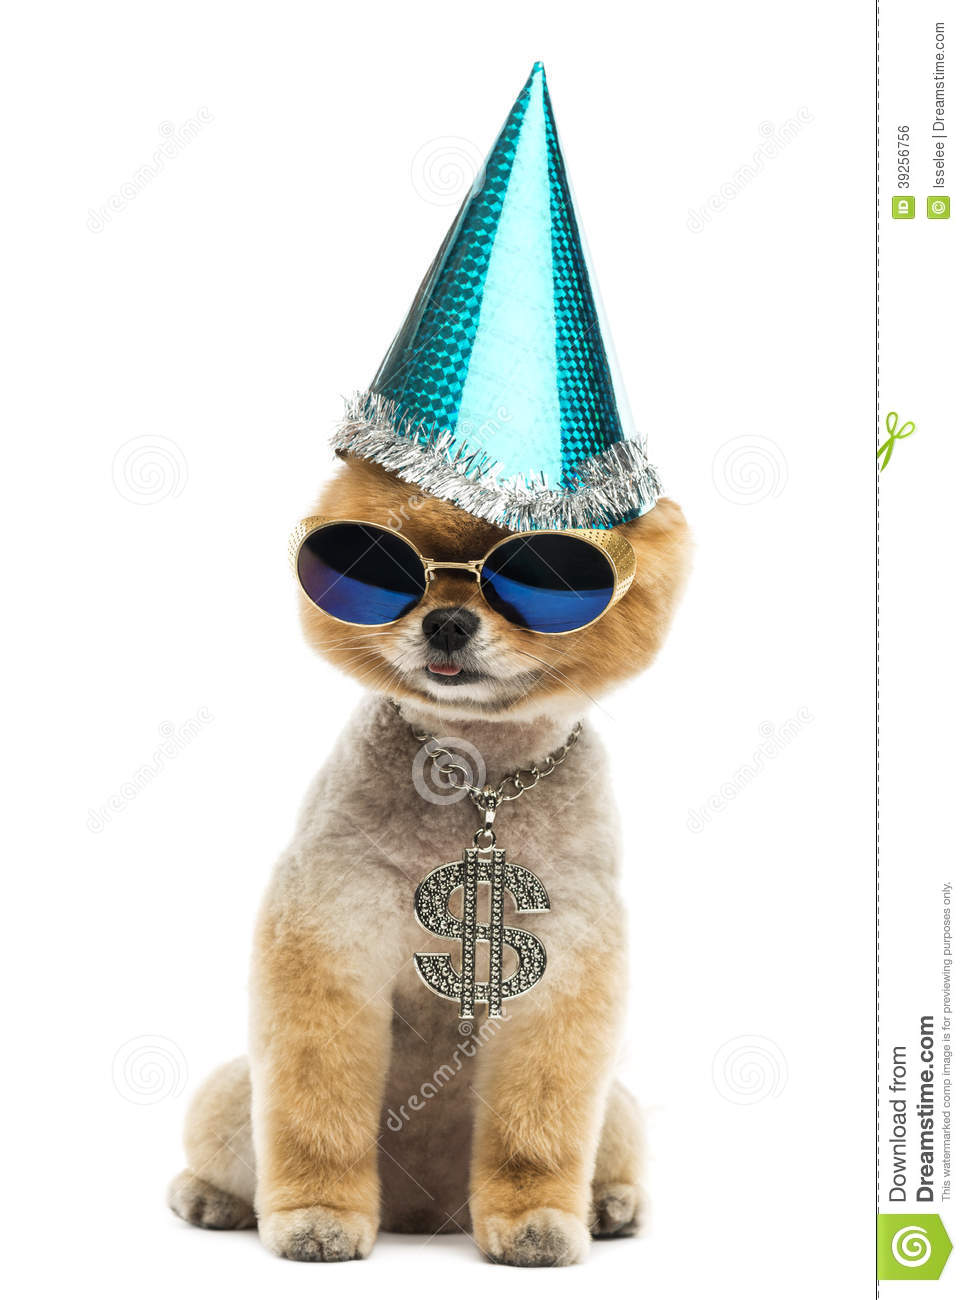 Pomeranian Dog Wearing Dollar Necklace Blue Sunglasses